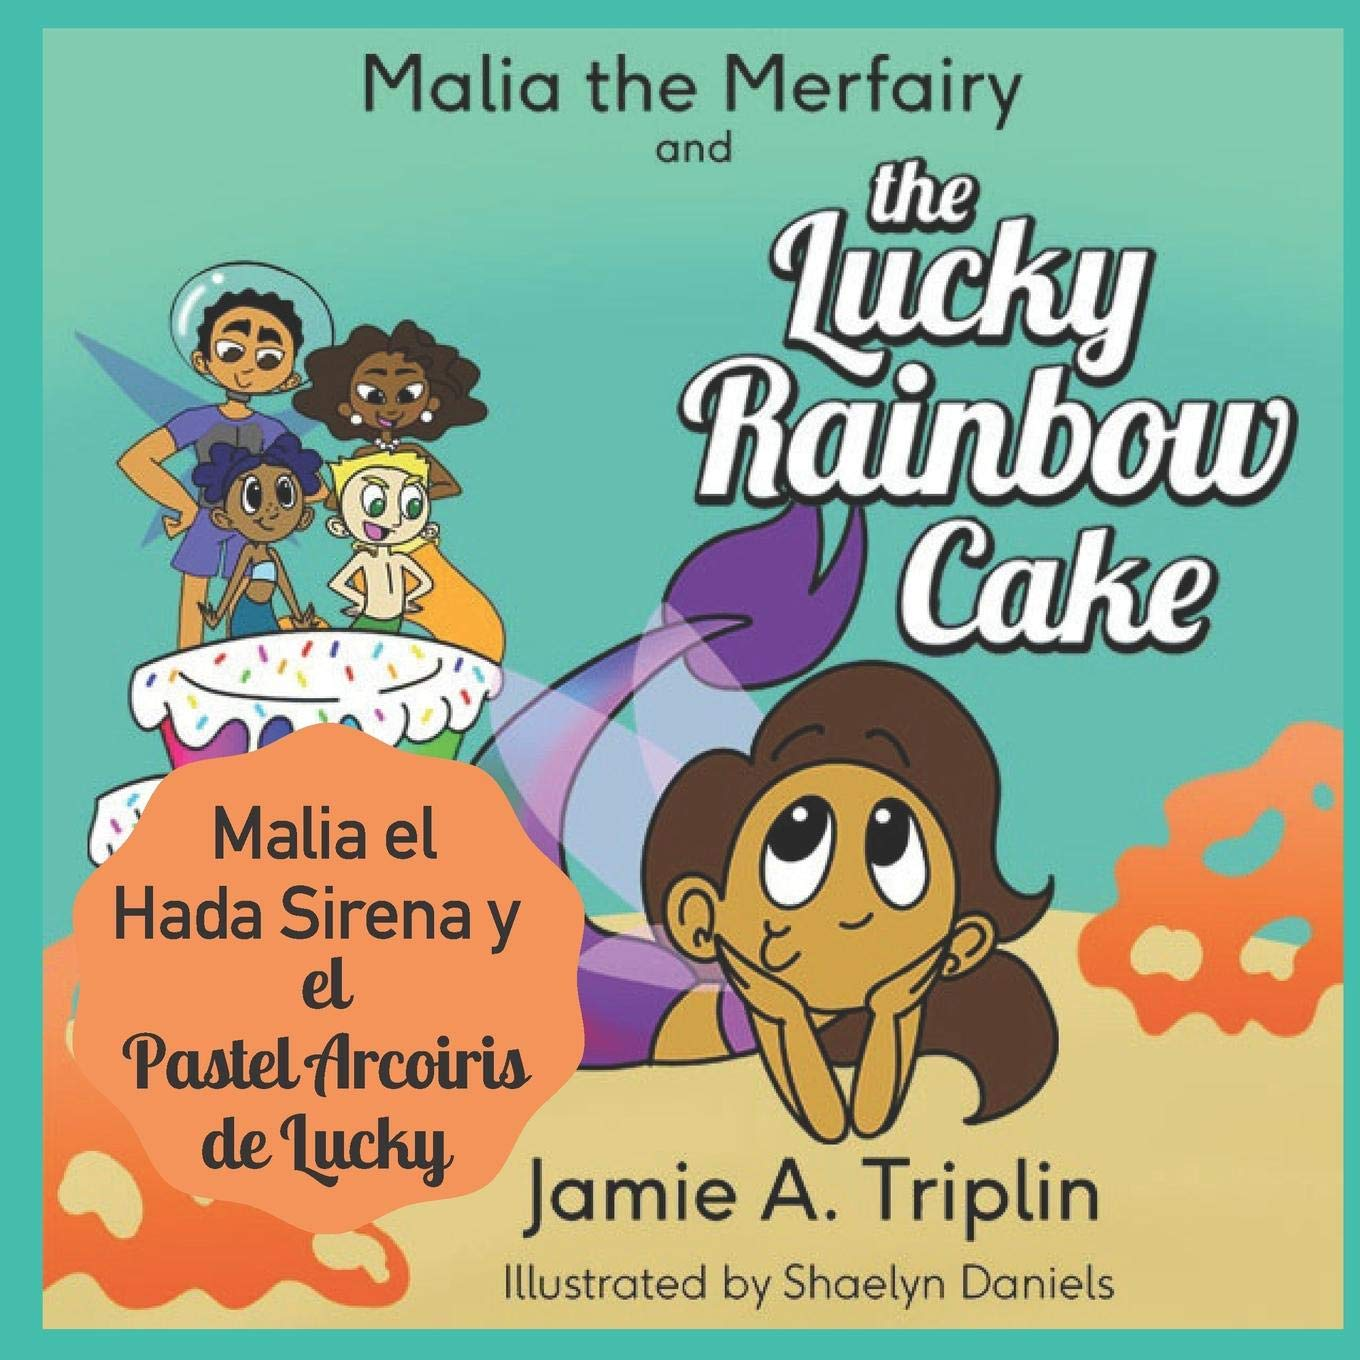 Malia The Merfairy And The Lucky Rainbow Cake Bilingual Spanish English Version Triplin Jamie A Daniels Shaelyn 9781079359978 Books